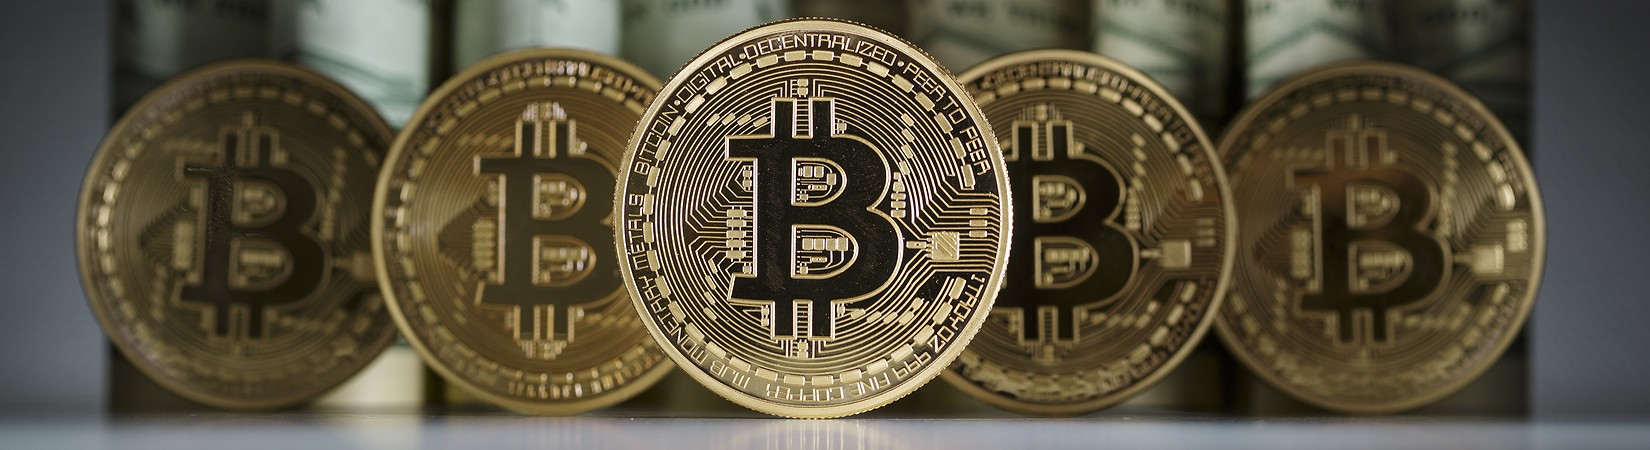 Goldman advised institutional investors to pay attention to Bitcoin